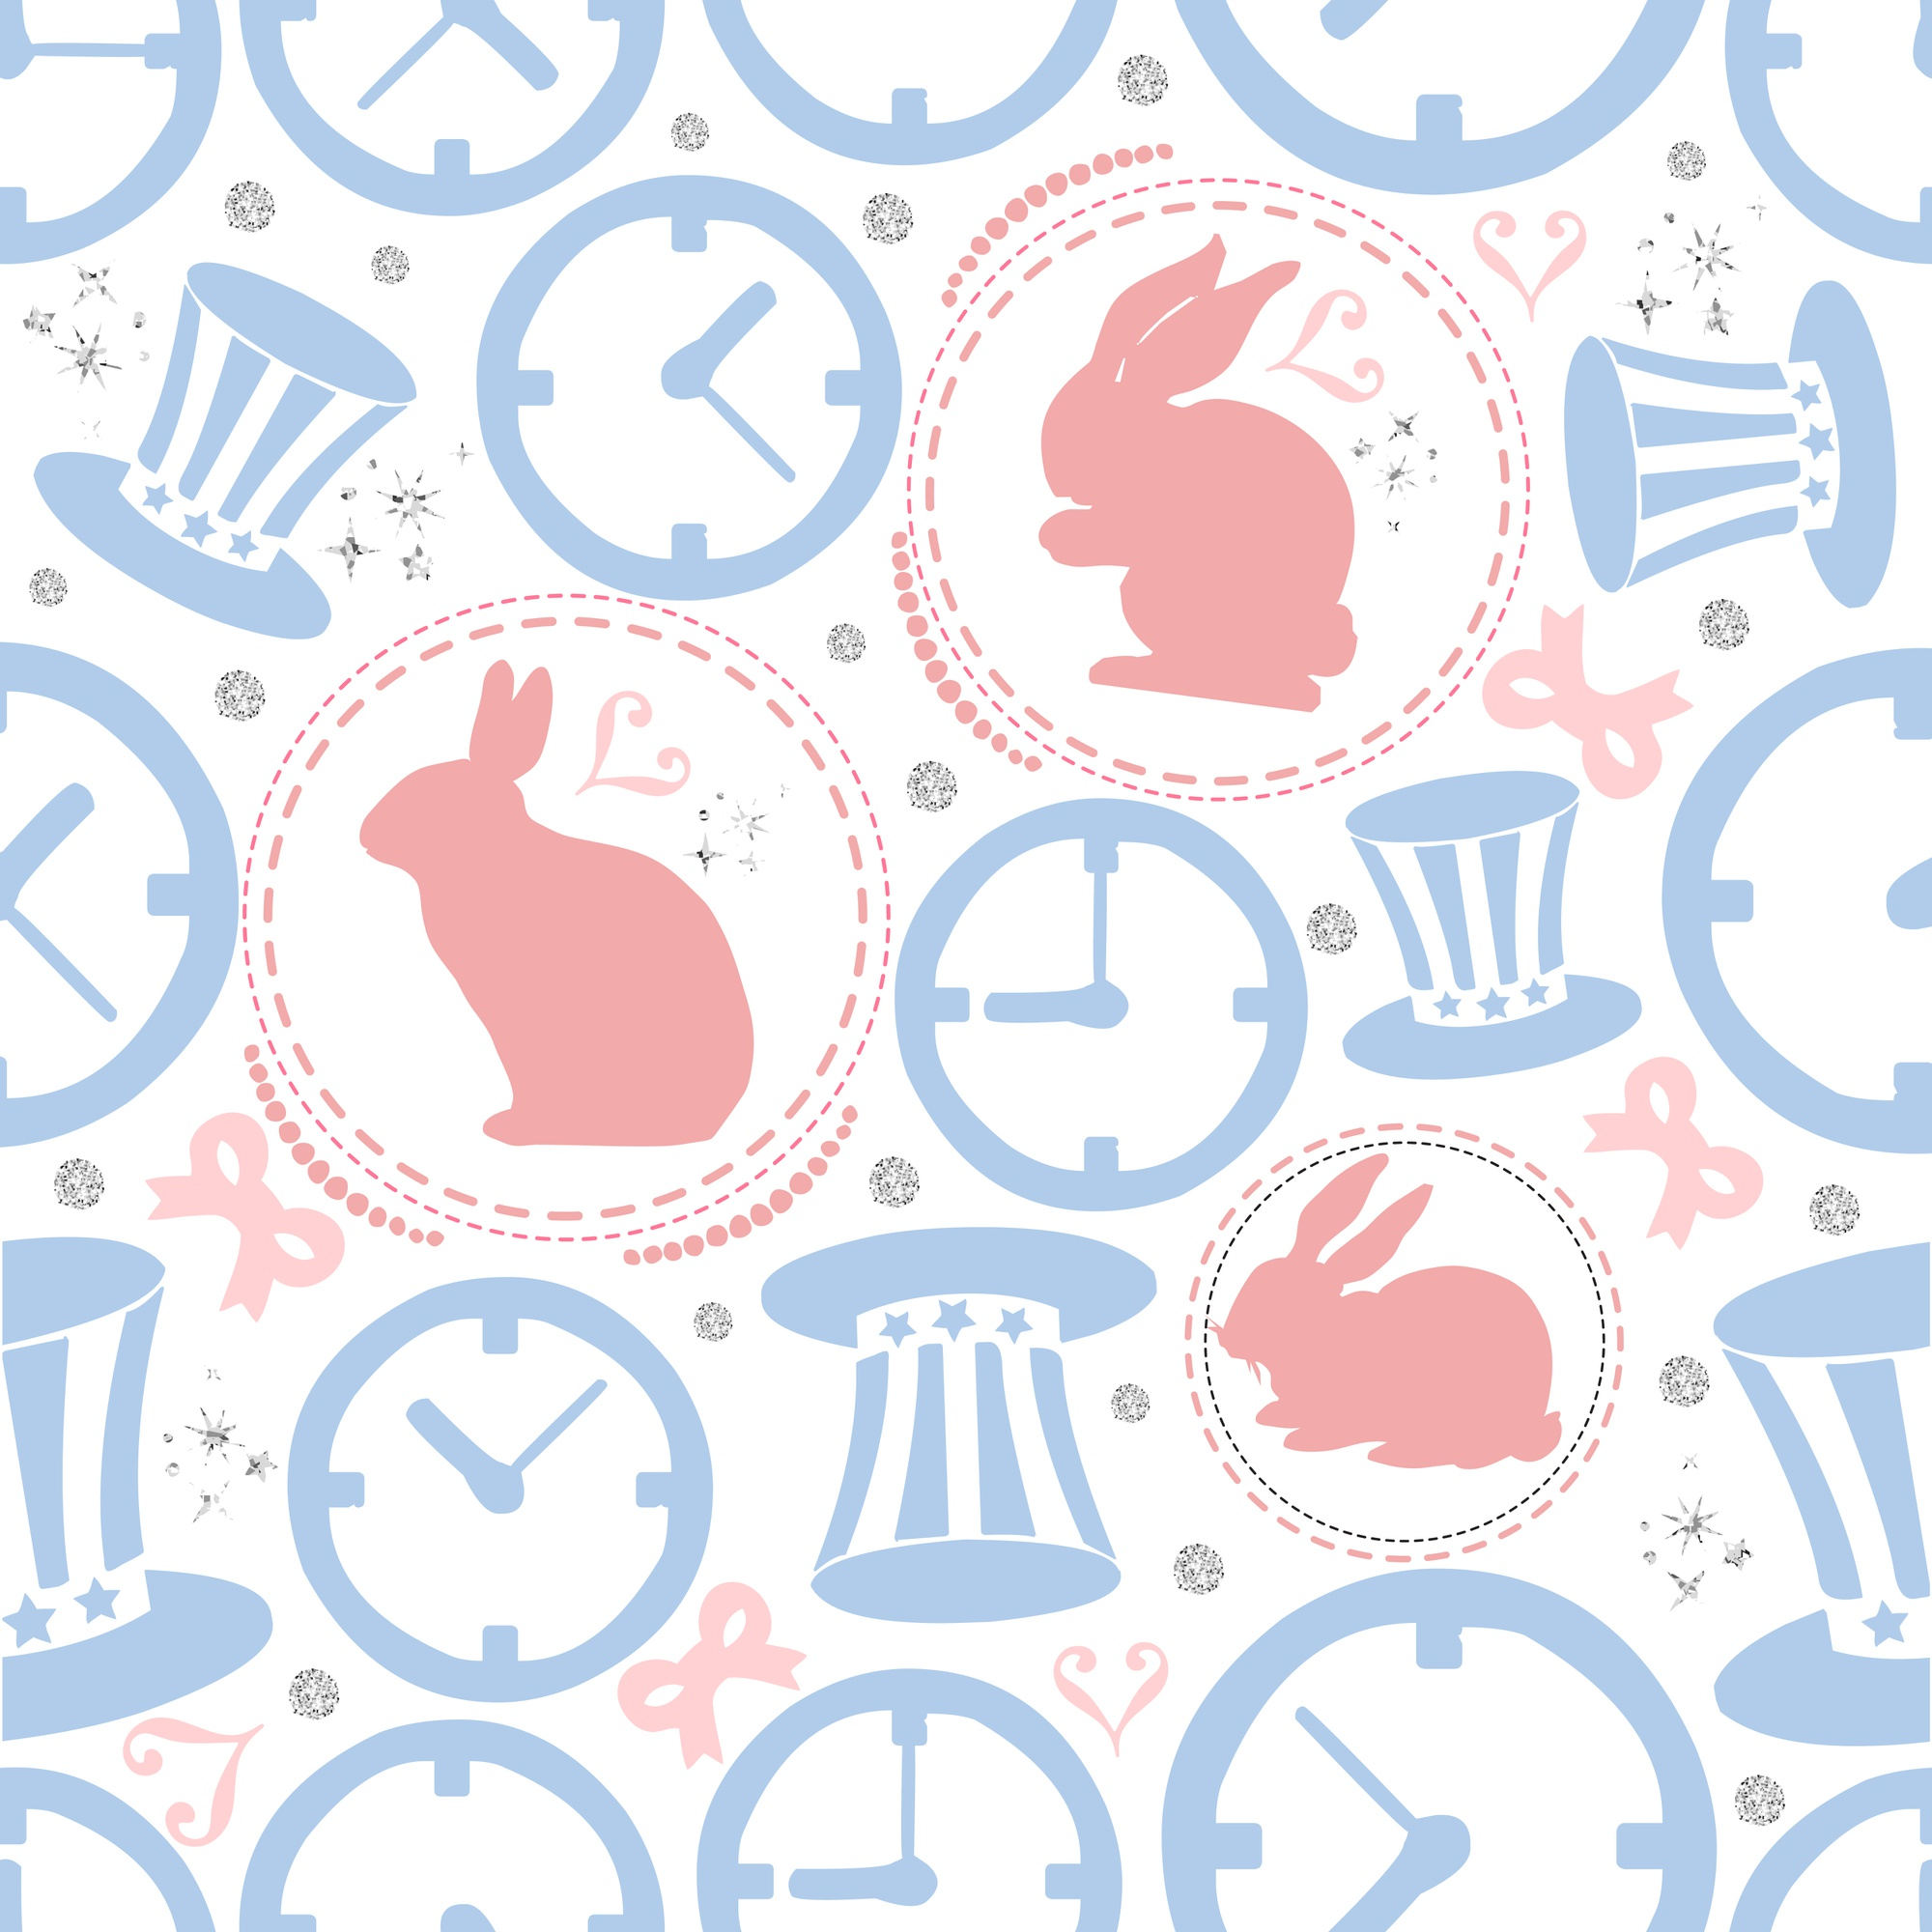 SEAMLESS RABBIT WITH SILVER DOT GLITTER ,CLOCK AND HAT PATTERN BACKGROUND , WONDERLAND THEME